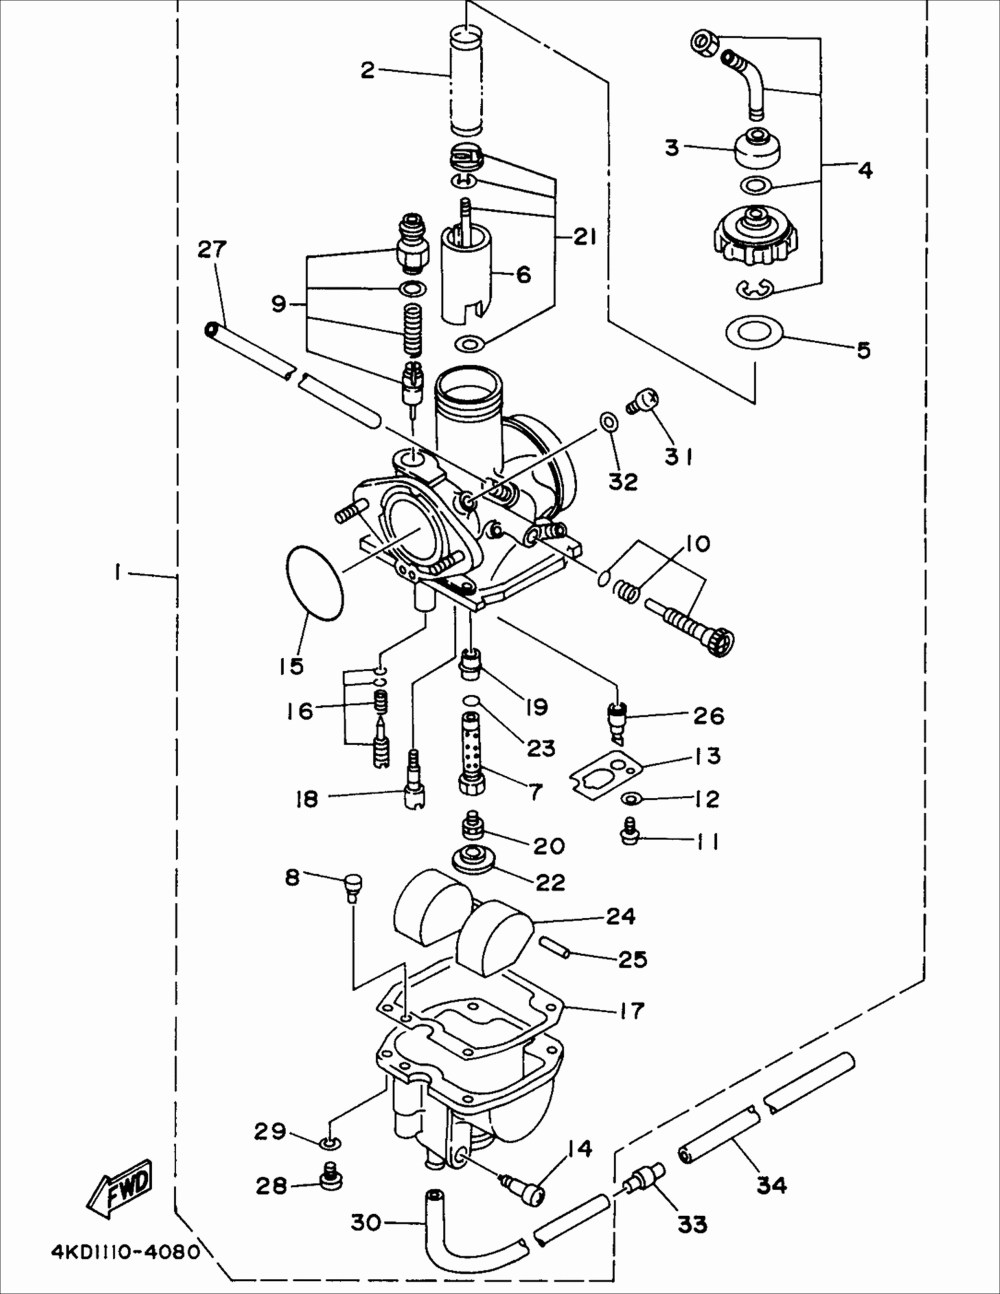 medium resolution of 1998 mitsubishi pajero engine diagram wiring diagram world 1995 mitsubishi montero engine diagram